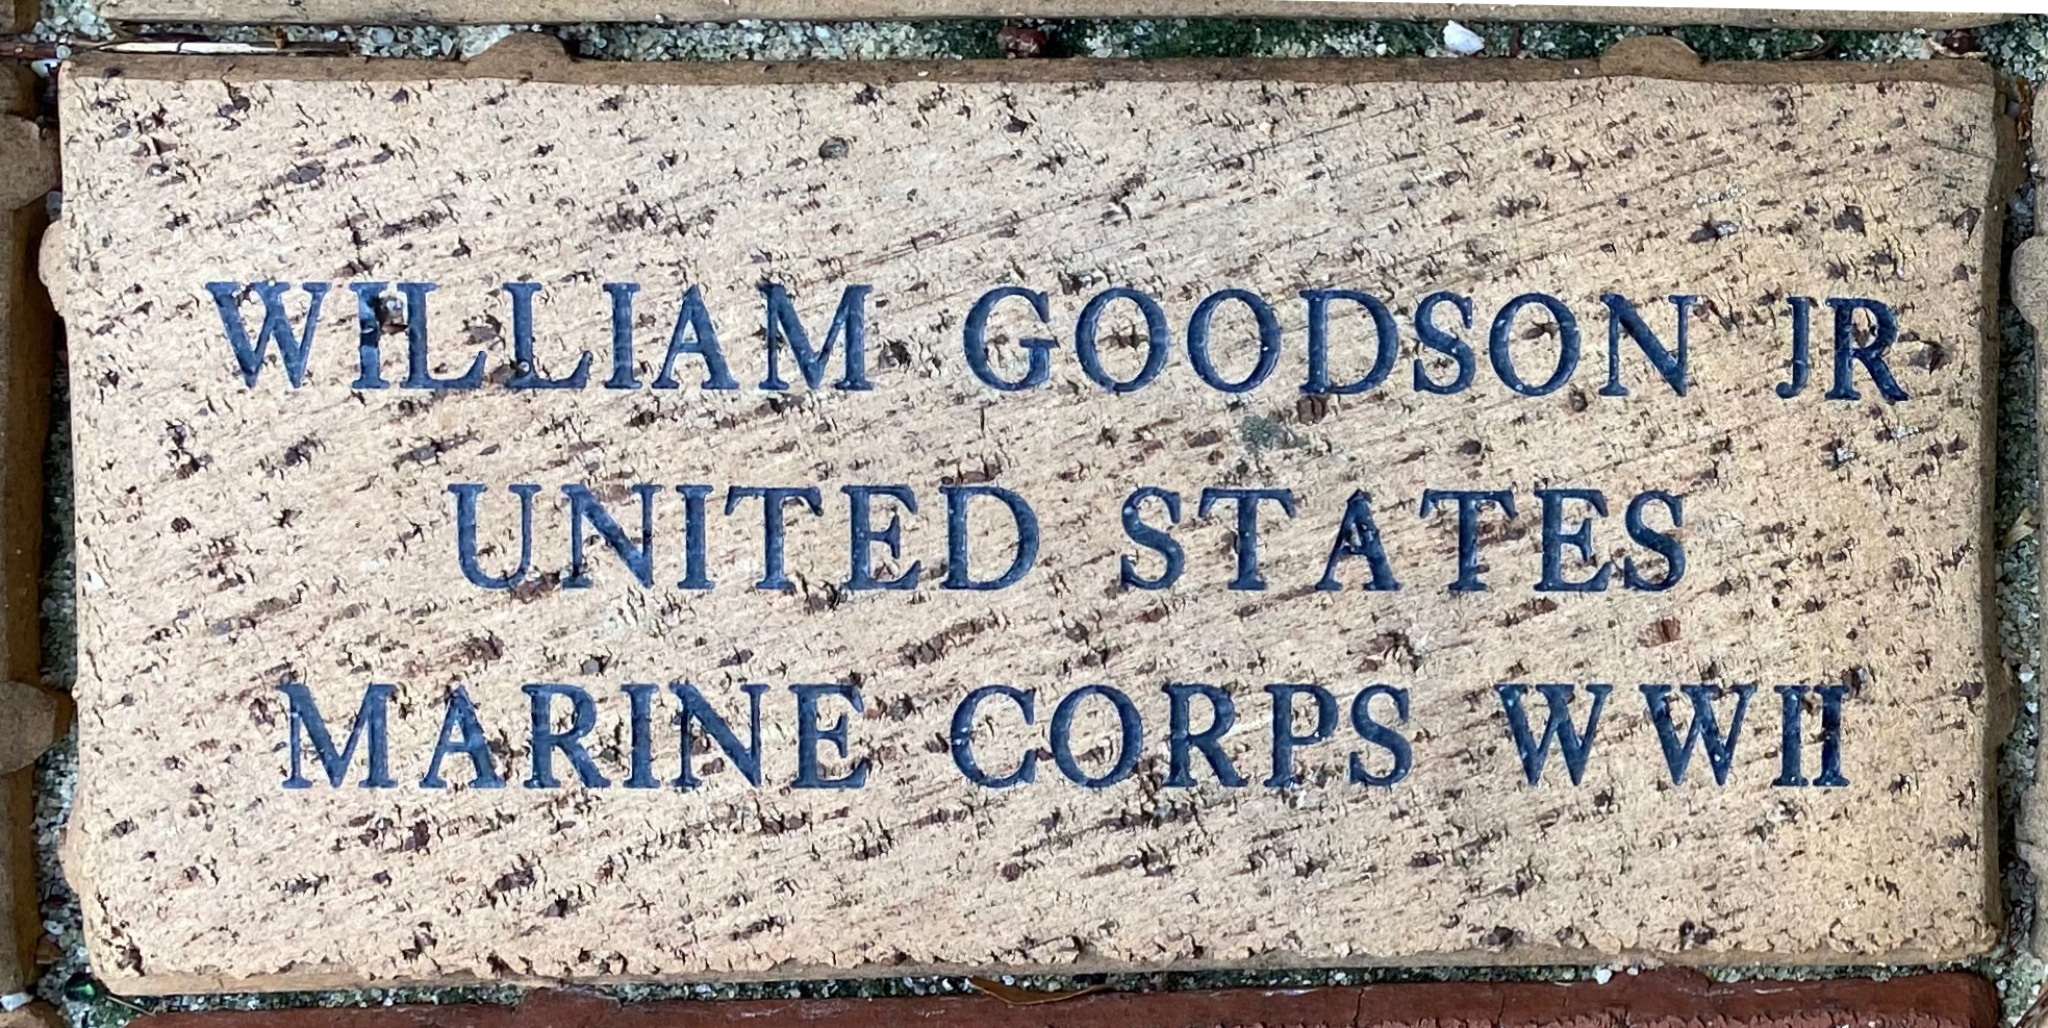 WILLIAM GOODSON JR UNITED STATES MARINE CORPS WWII